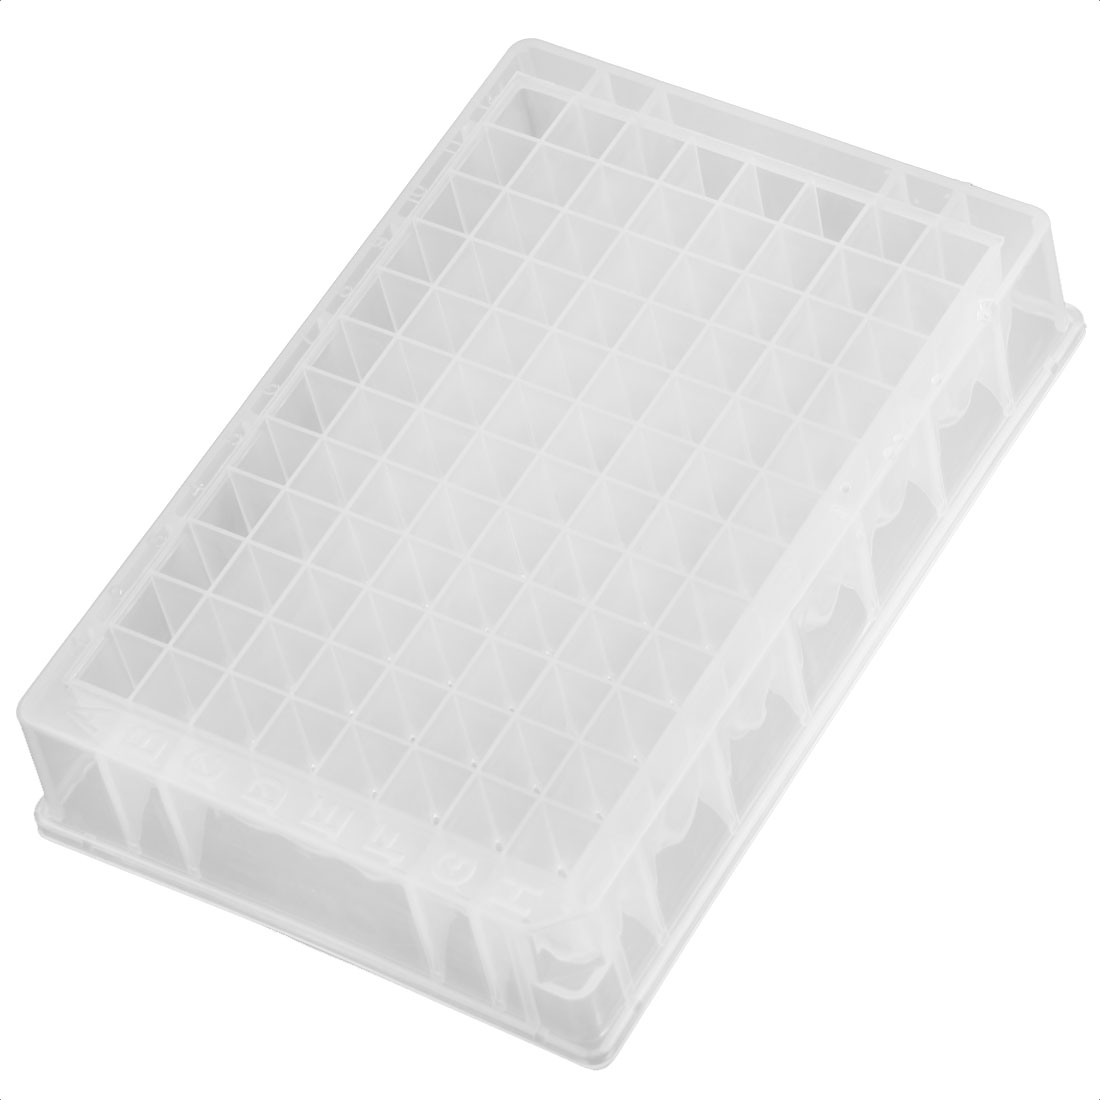 Lab 1ml 96 Square Shape Hole Well PCR Plate for DNA RNA Extraction